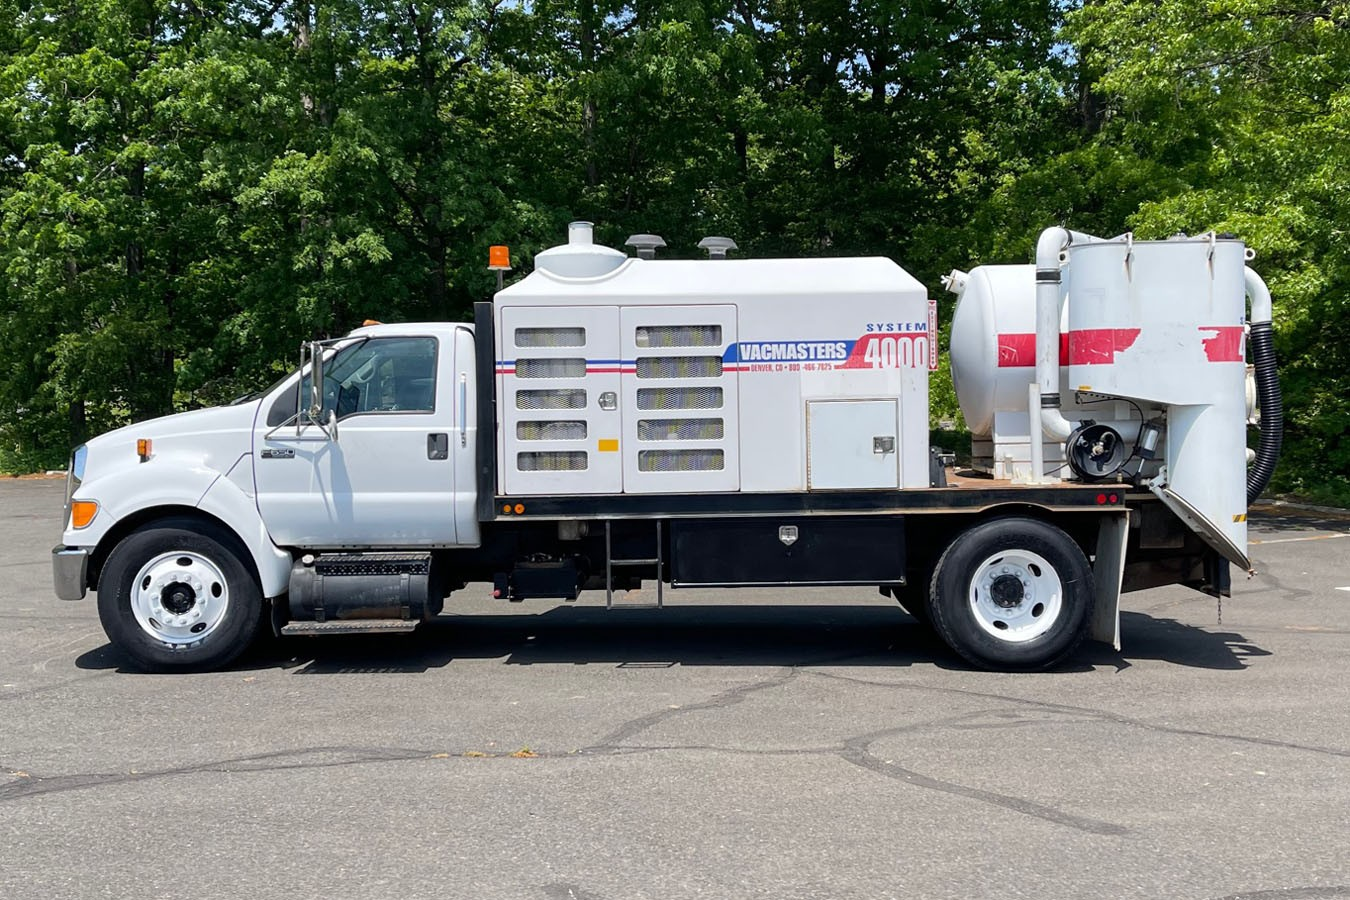 Used, 2008, Other, FORD F650 W/ VACMASTER VACUUM EXCAVATOR MODEL VND-S4000, Other